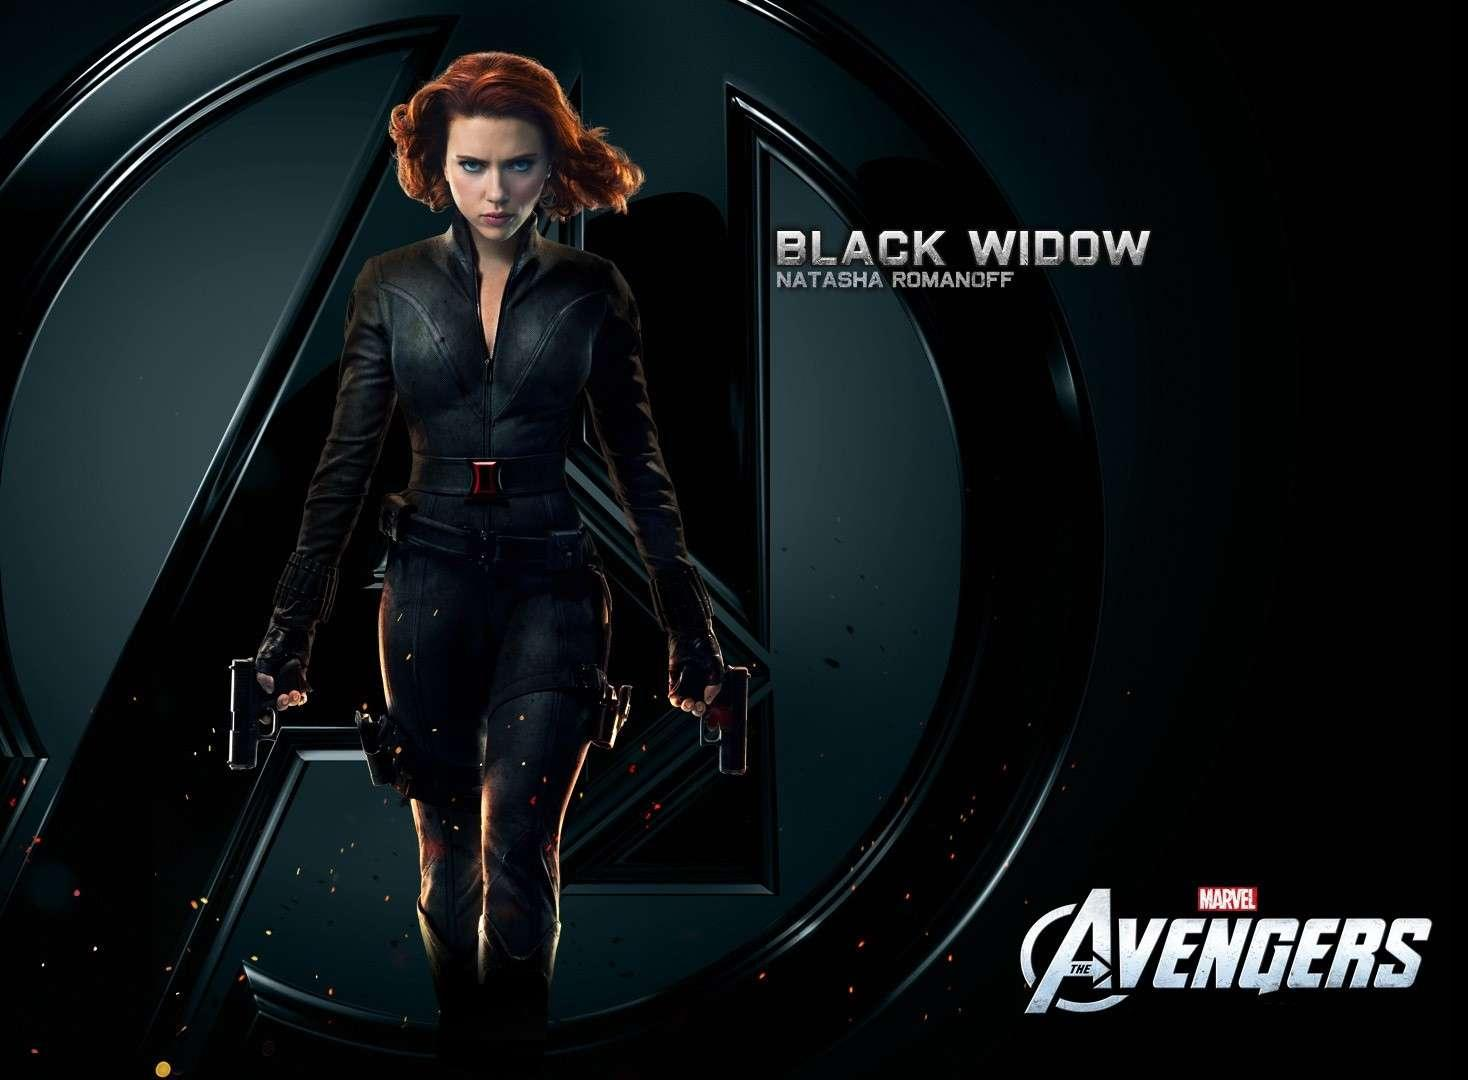 black widow the avengers black widow photo 30737253. Black Bedroom Furniture Sets. Home Design Ideas